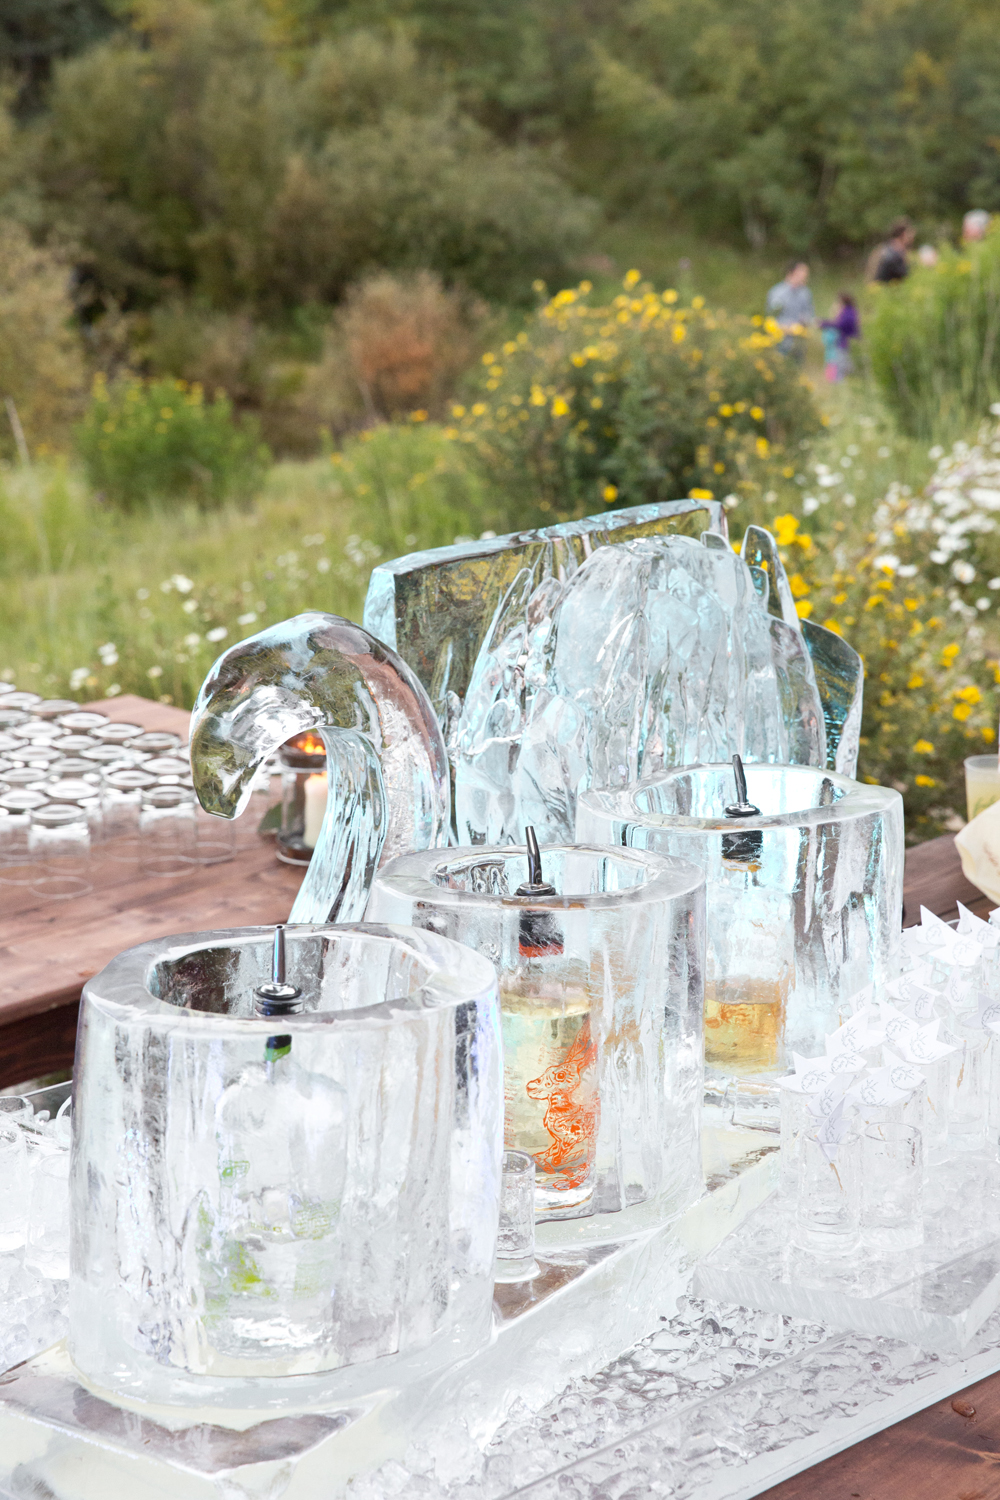 Ice bar with sculpture and ice buckets